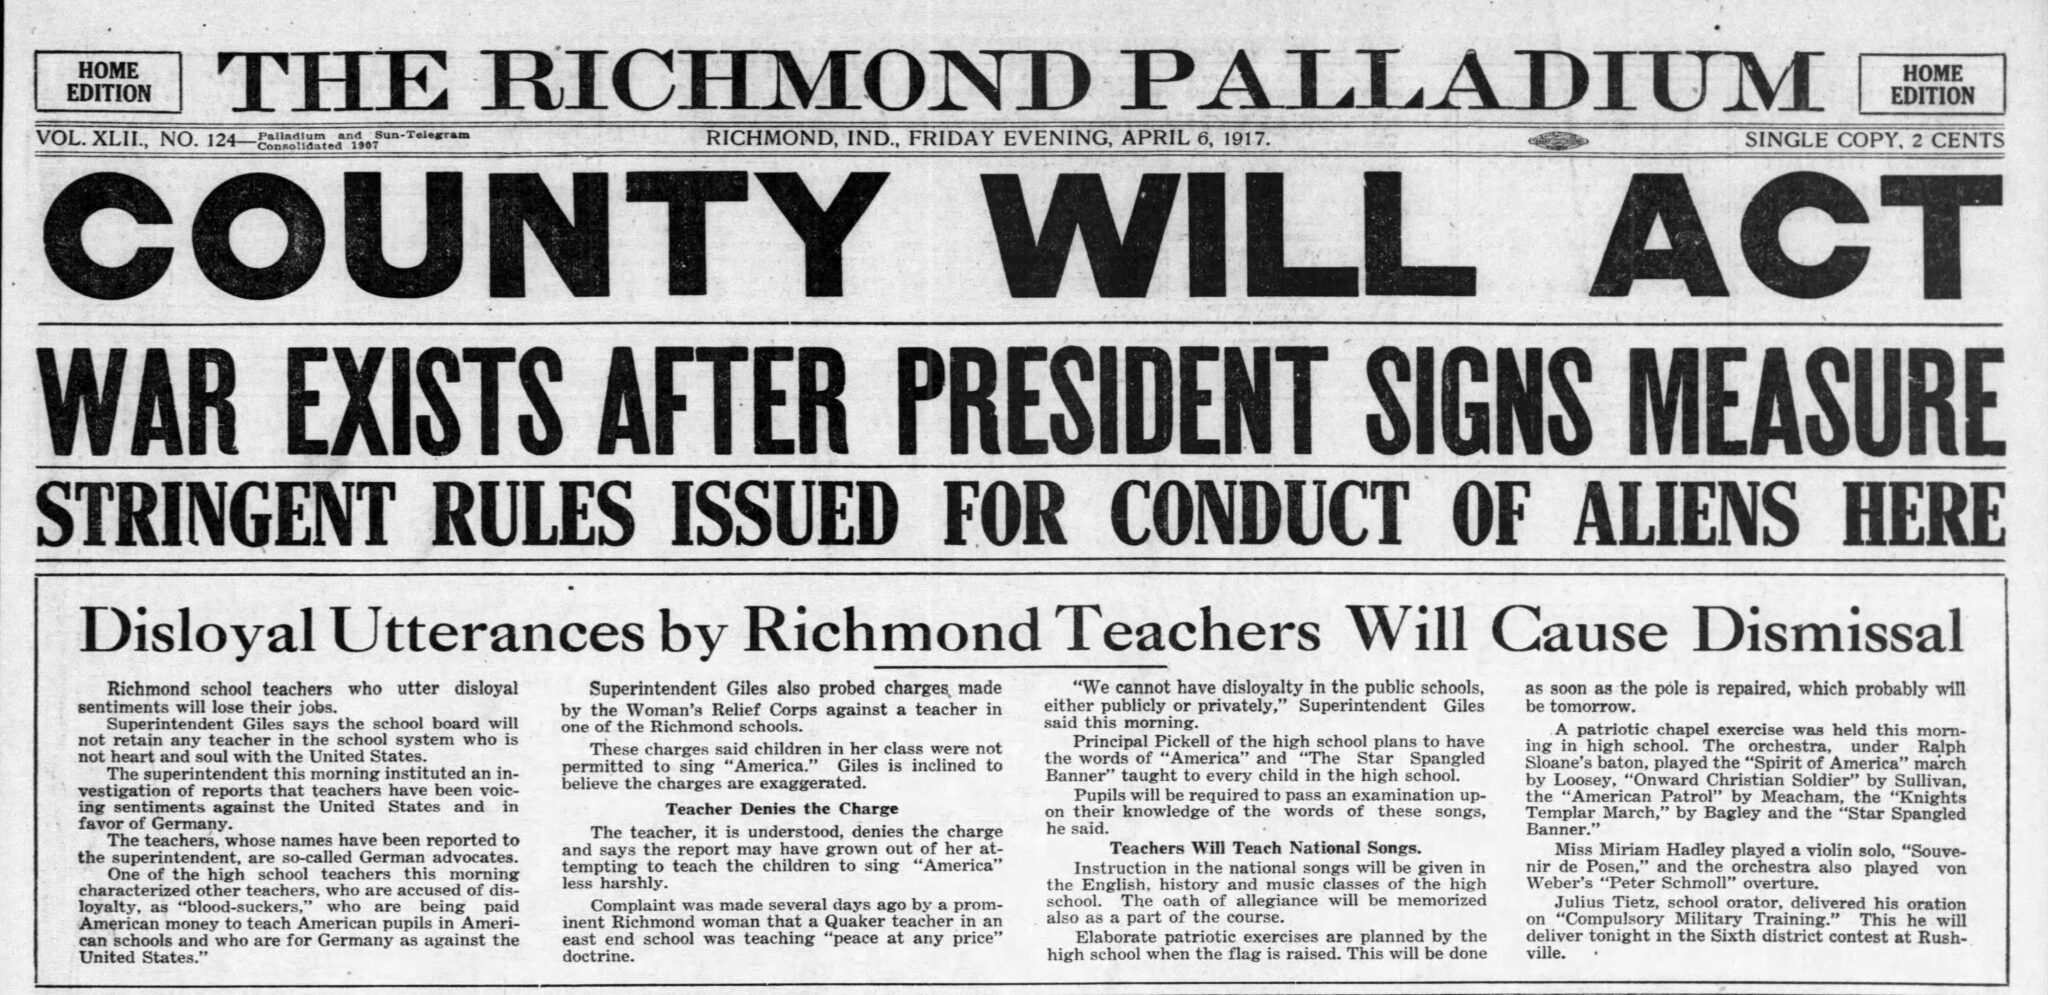 Richmond Palladium headline